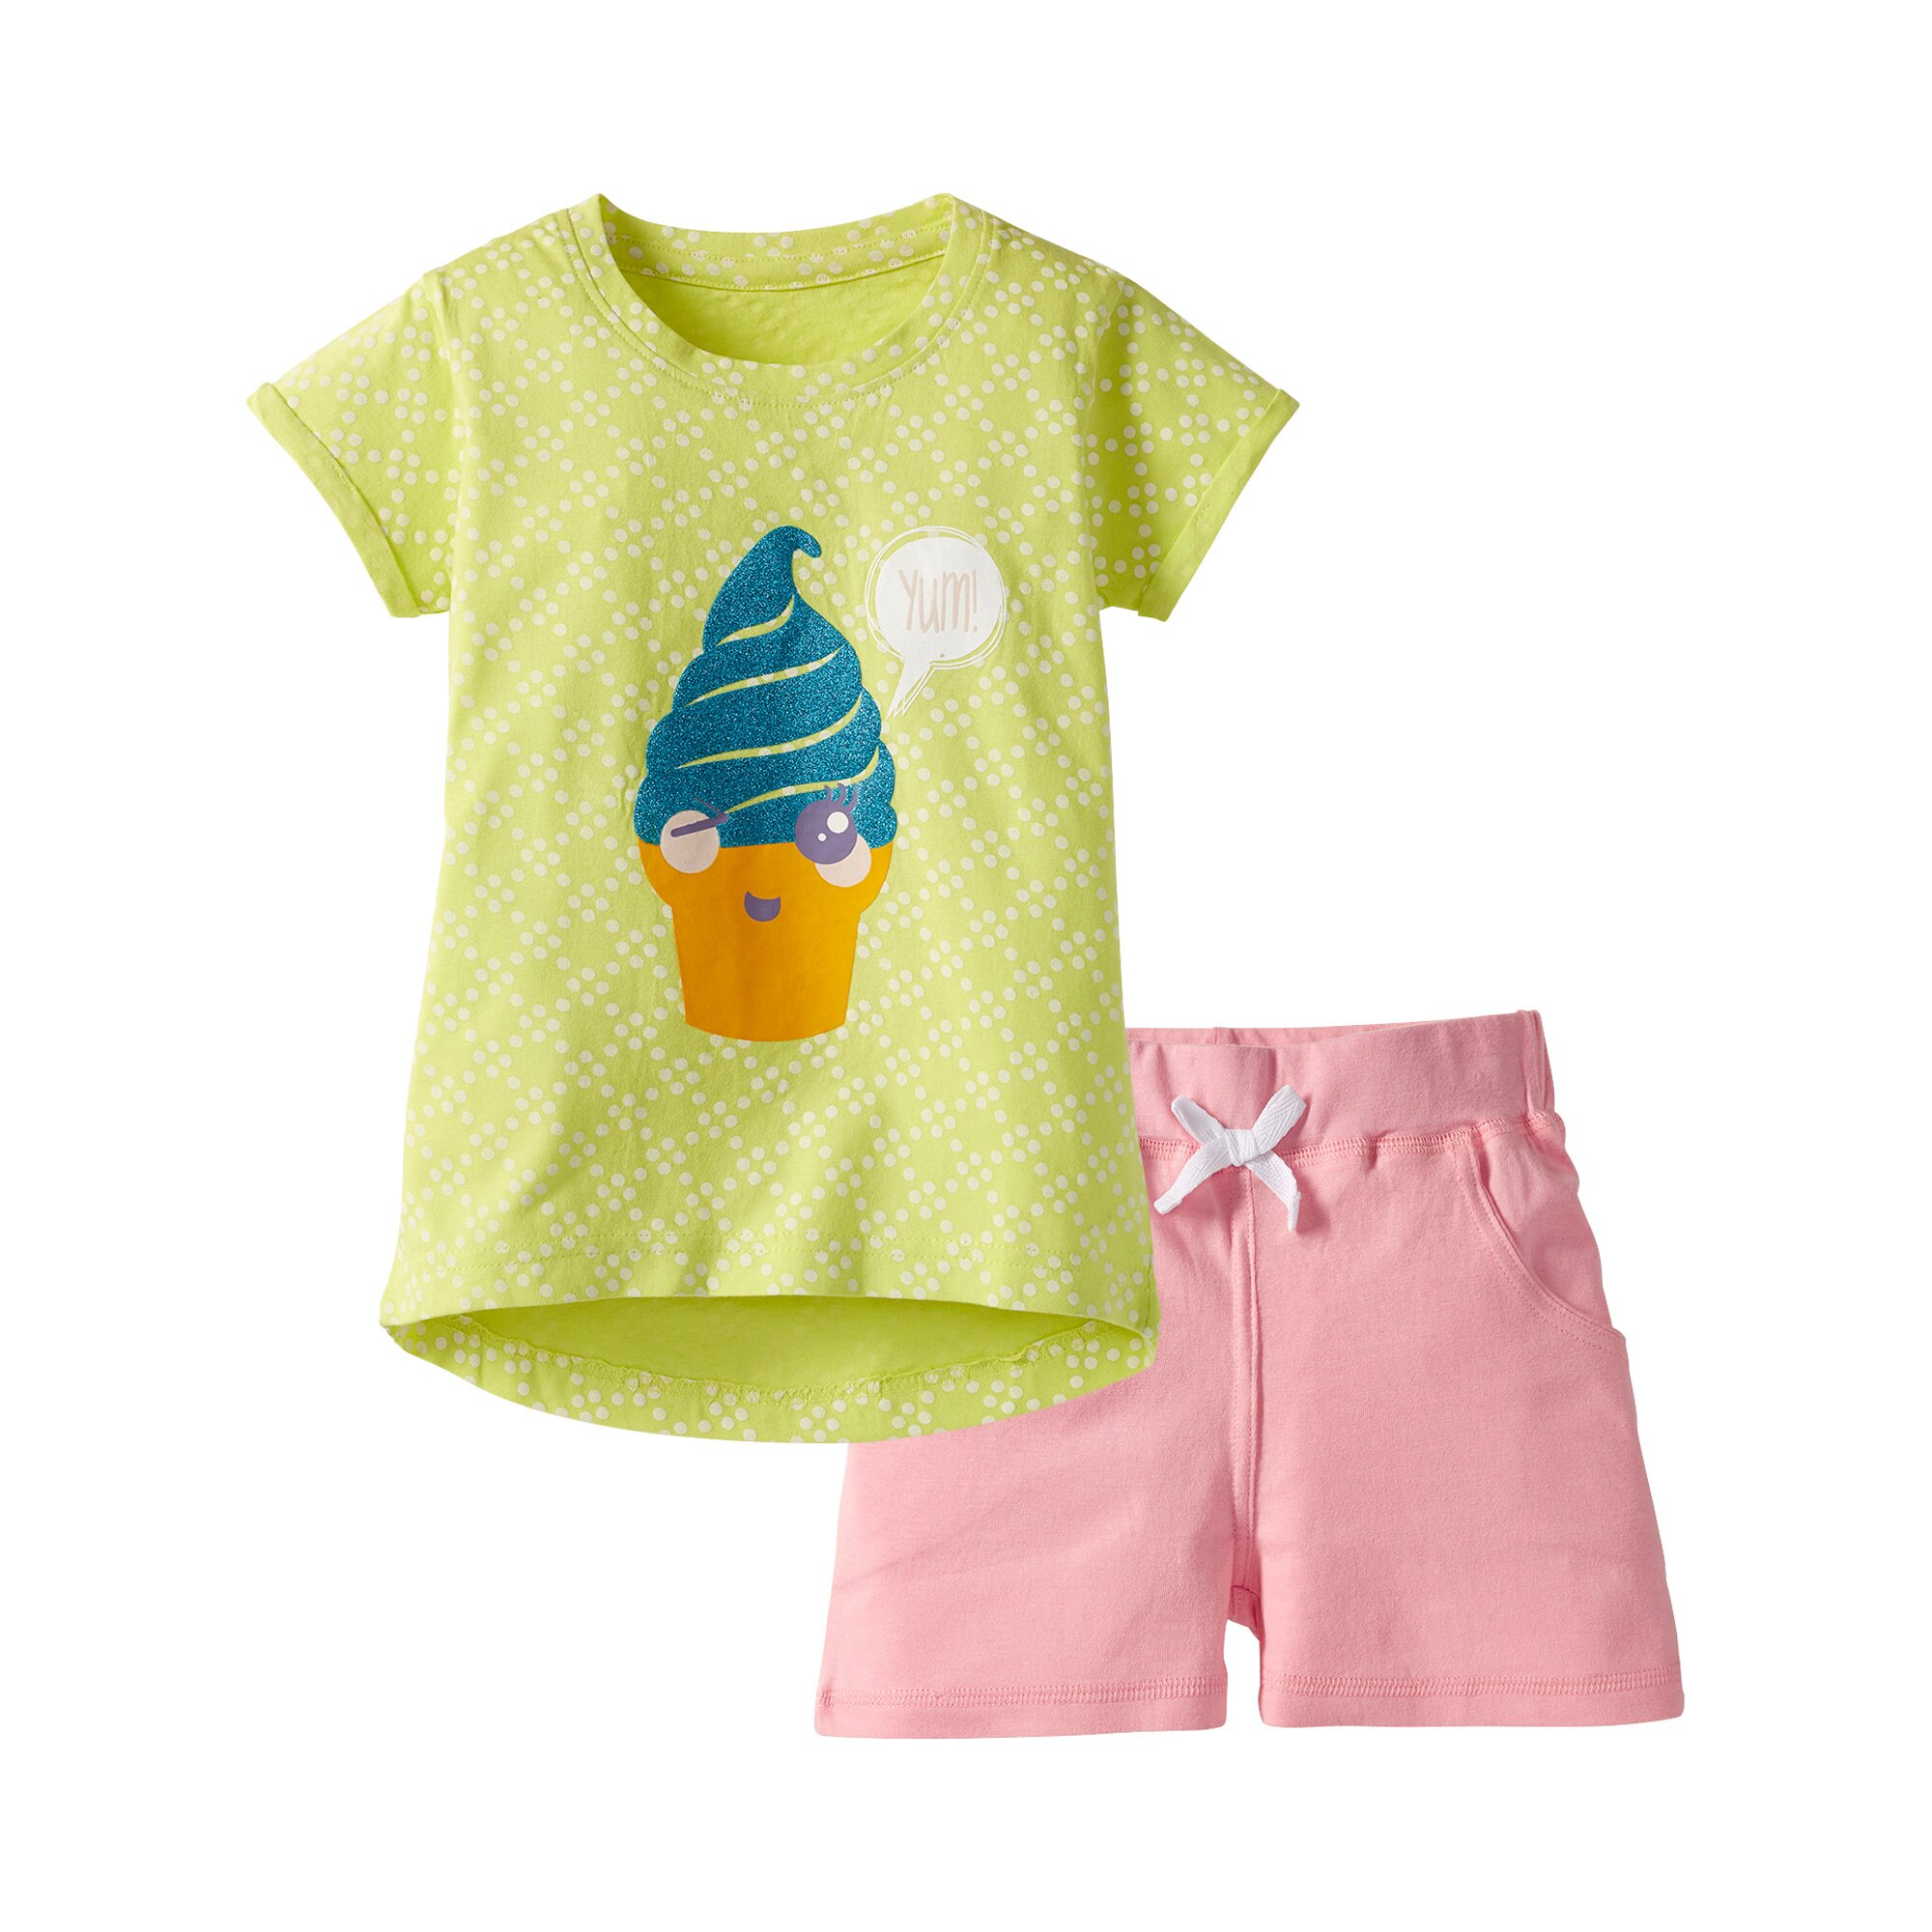 Cute Rebels Set T-Shirt + Shorts mehrfarbig 92/98/104/110/116/122/128